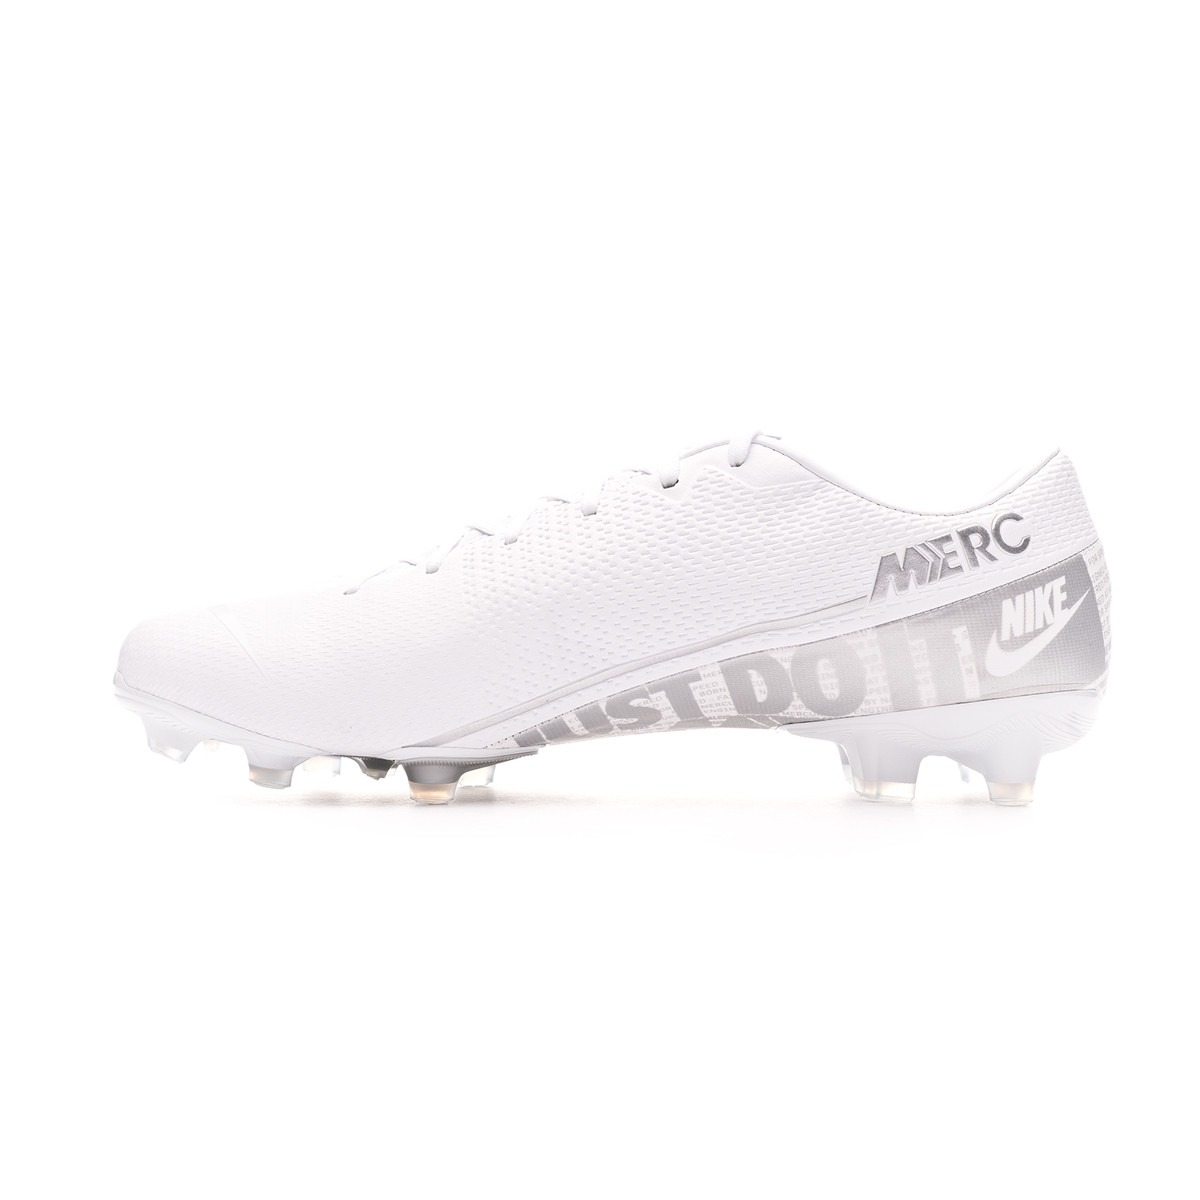 really cheap wholesale outlet limited guantity Nike Mercurial Vapor XIII Academy FG/MG Football Boots